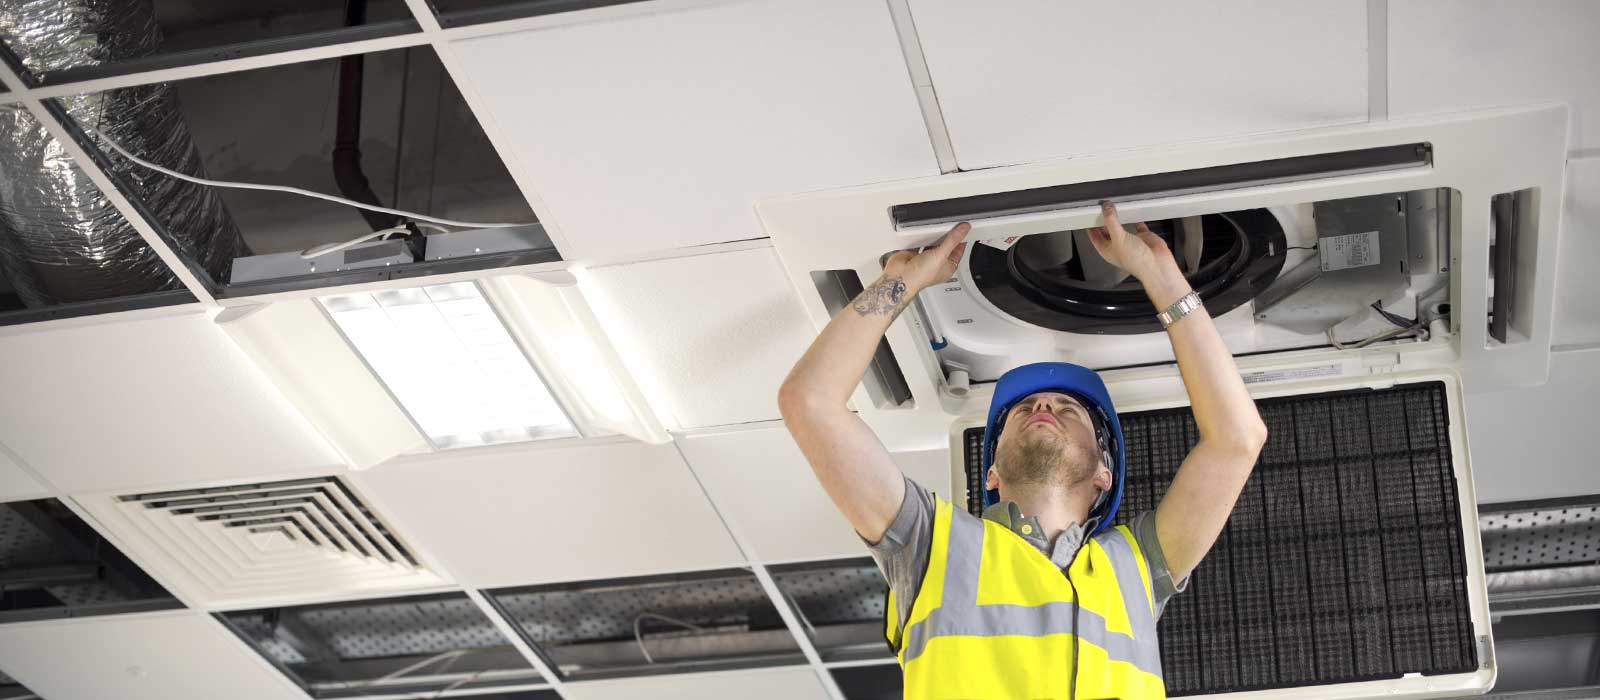 Engineer working on ceiling air conditioning duct : HVAC Services North West